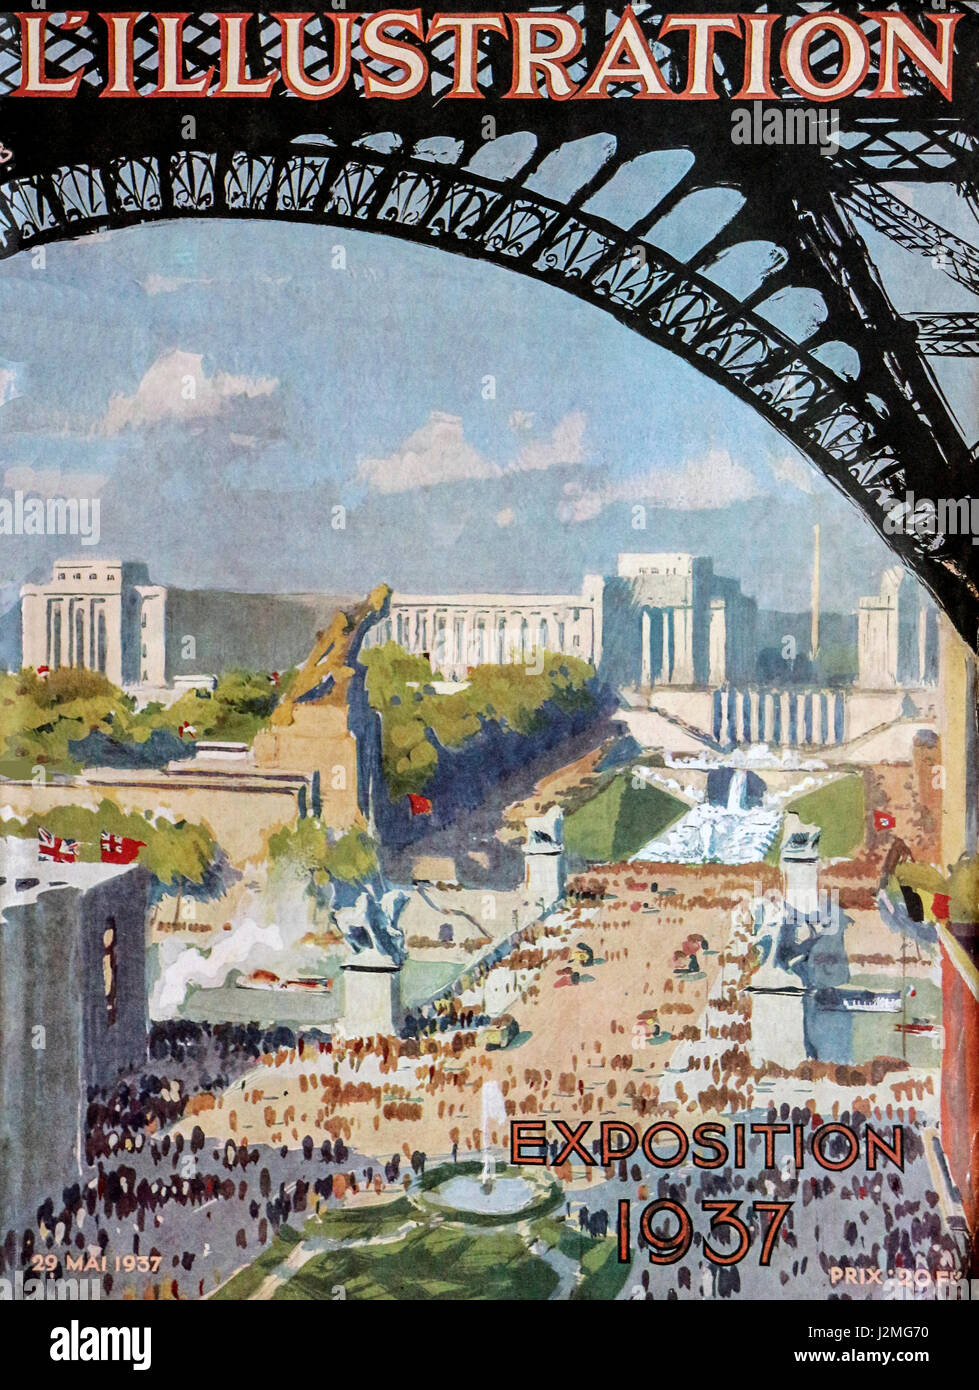 L'Illustration French magazine 29 May 1937 Paris exposition - Stock Image